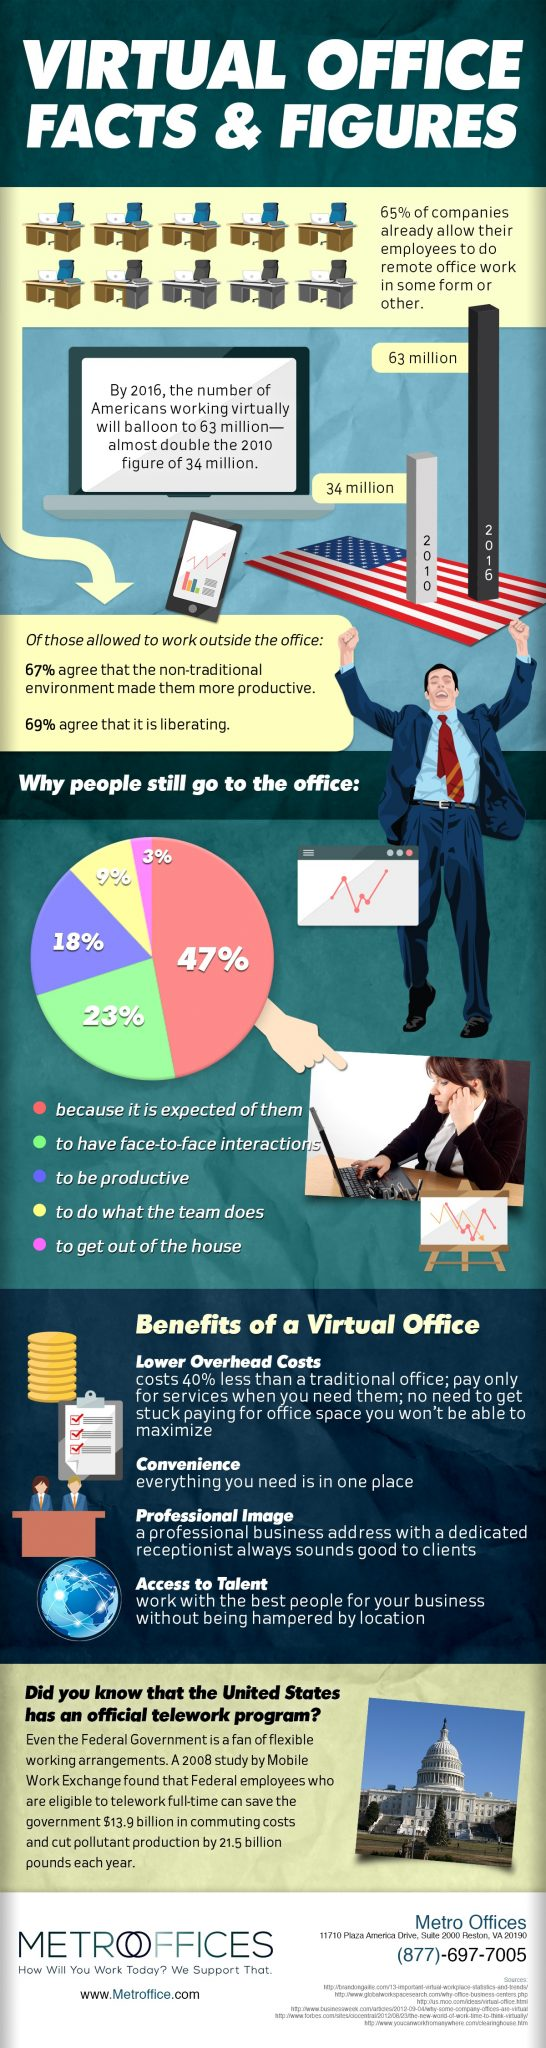 Virtual Office Facts and Figures